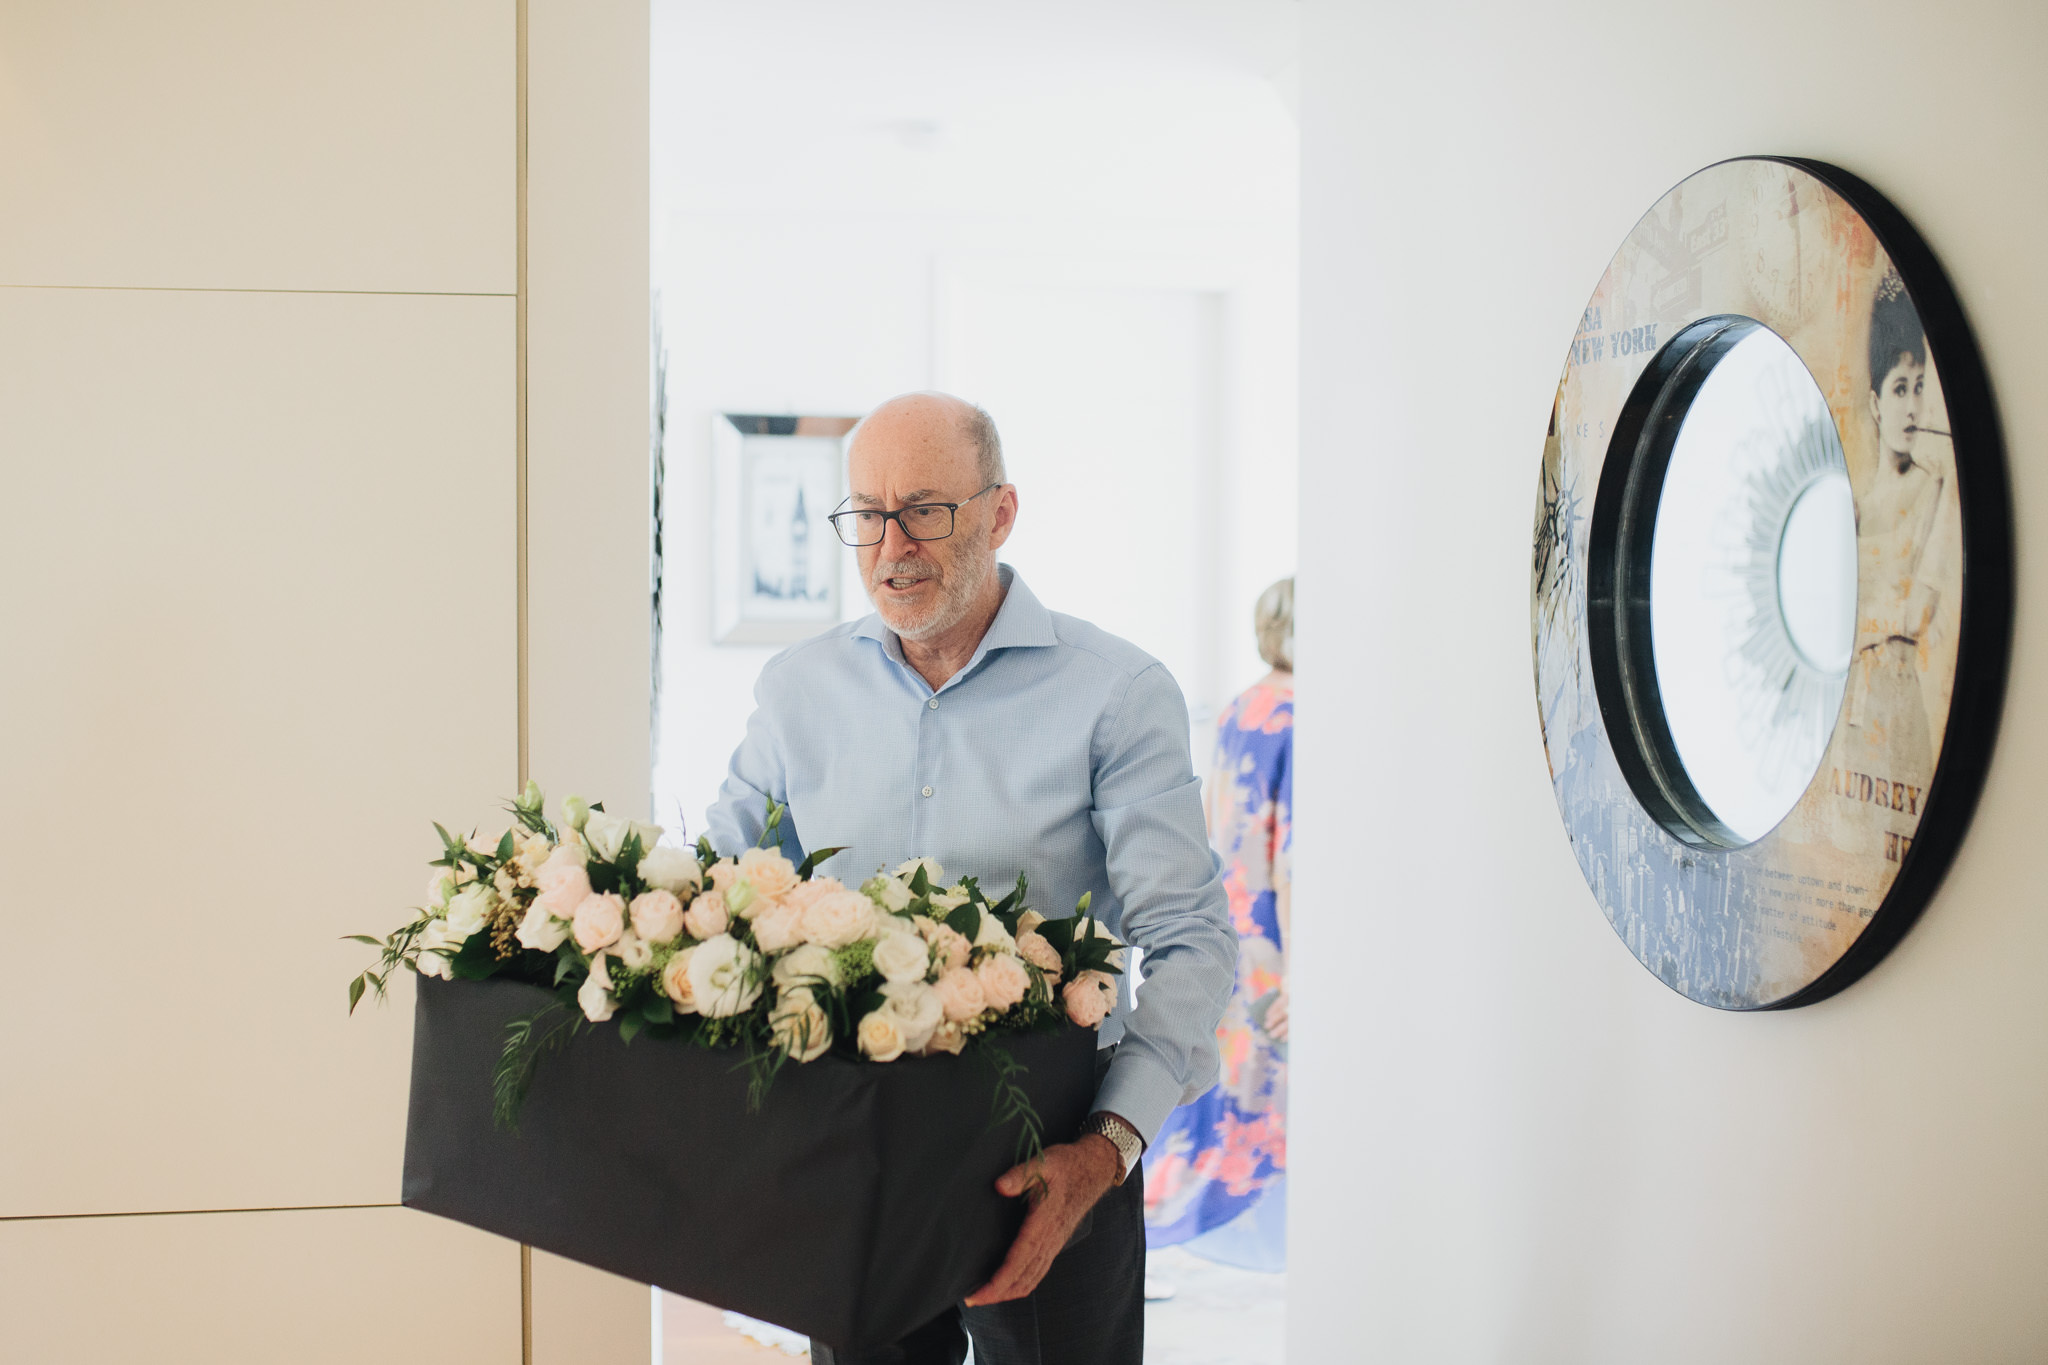 Father of the bride holding wedding flowers